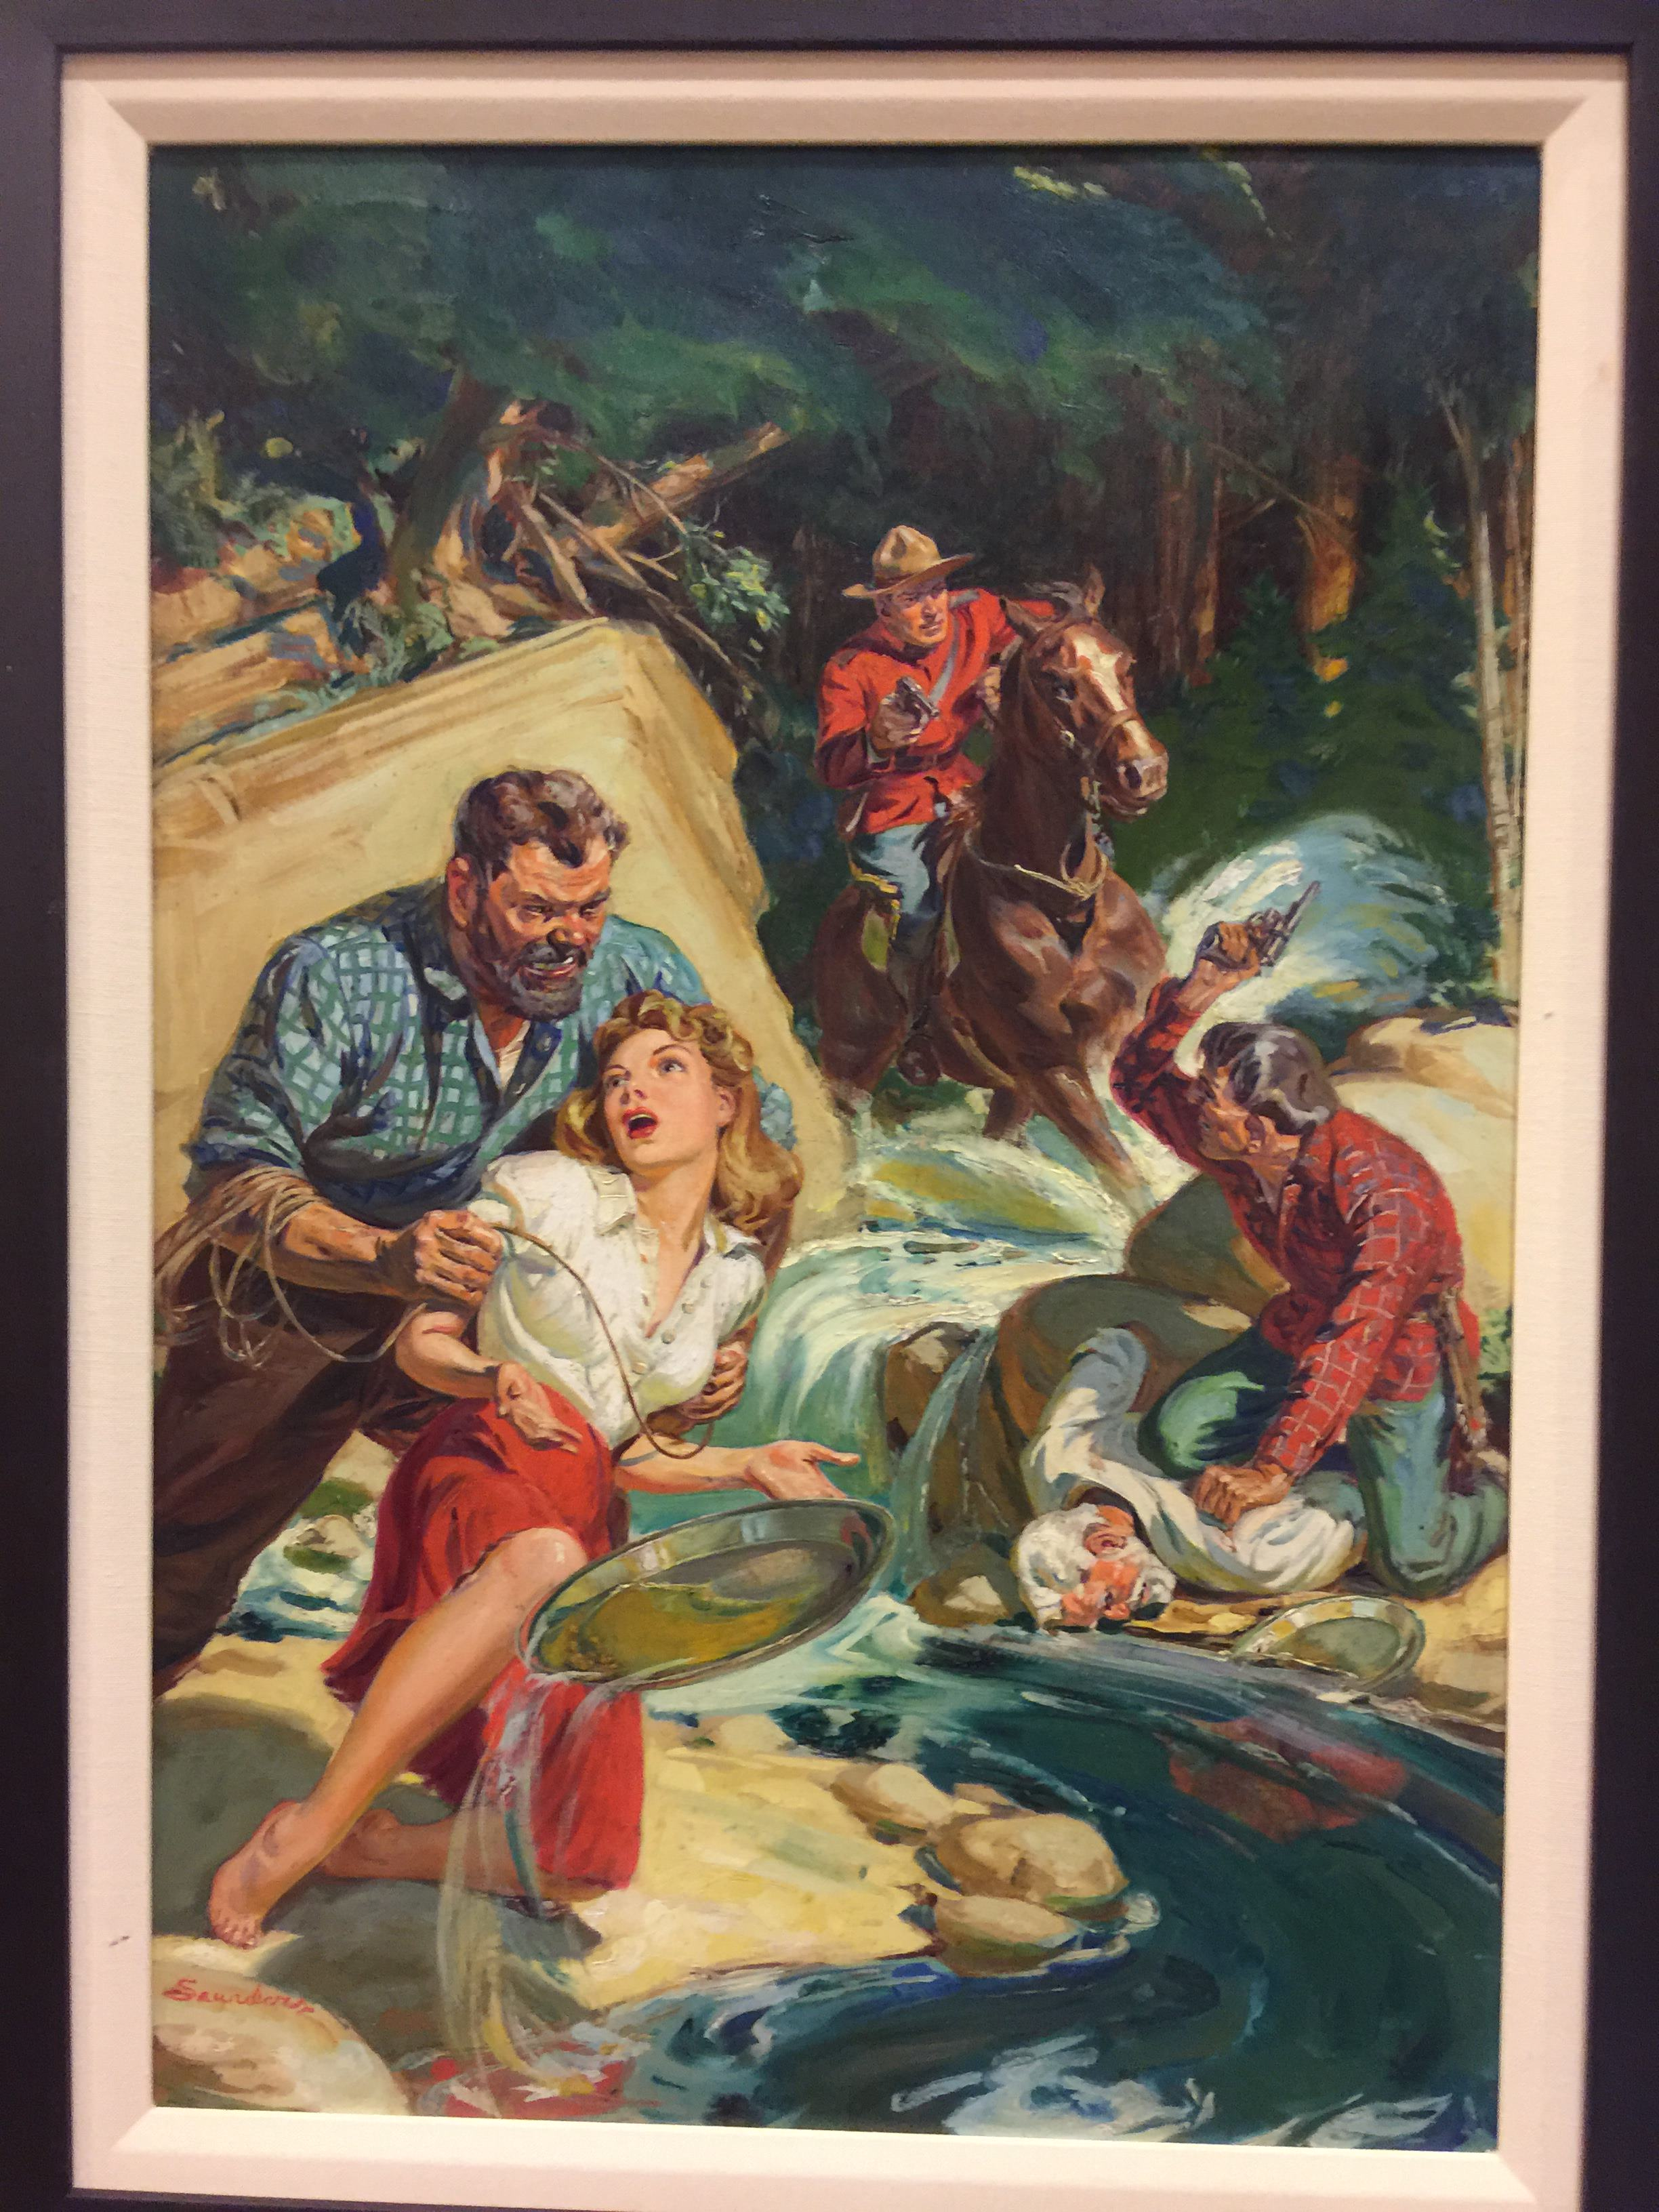 Norman Saunders Northwest Romances cover